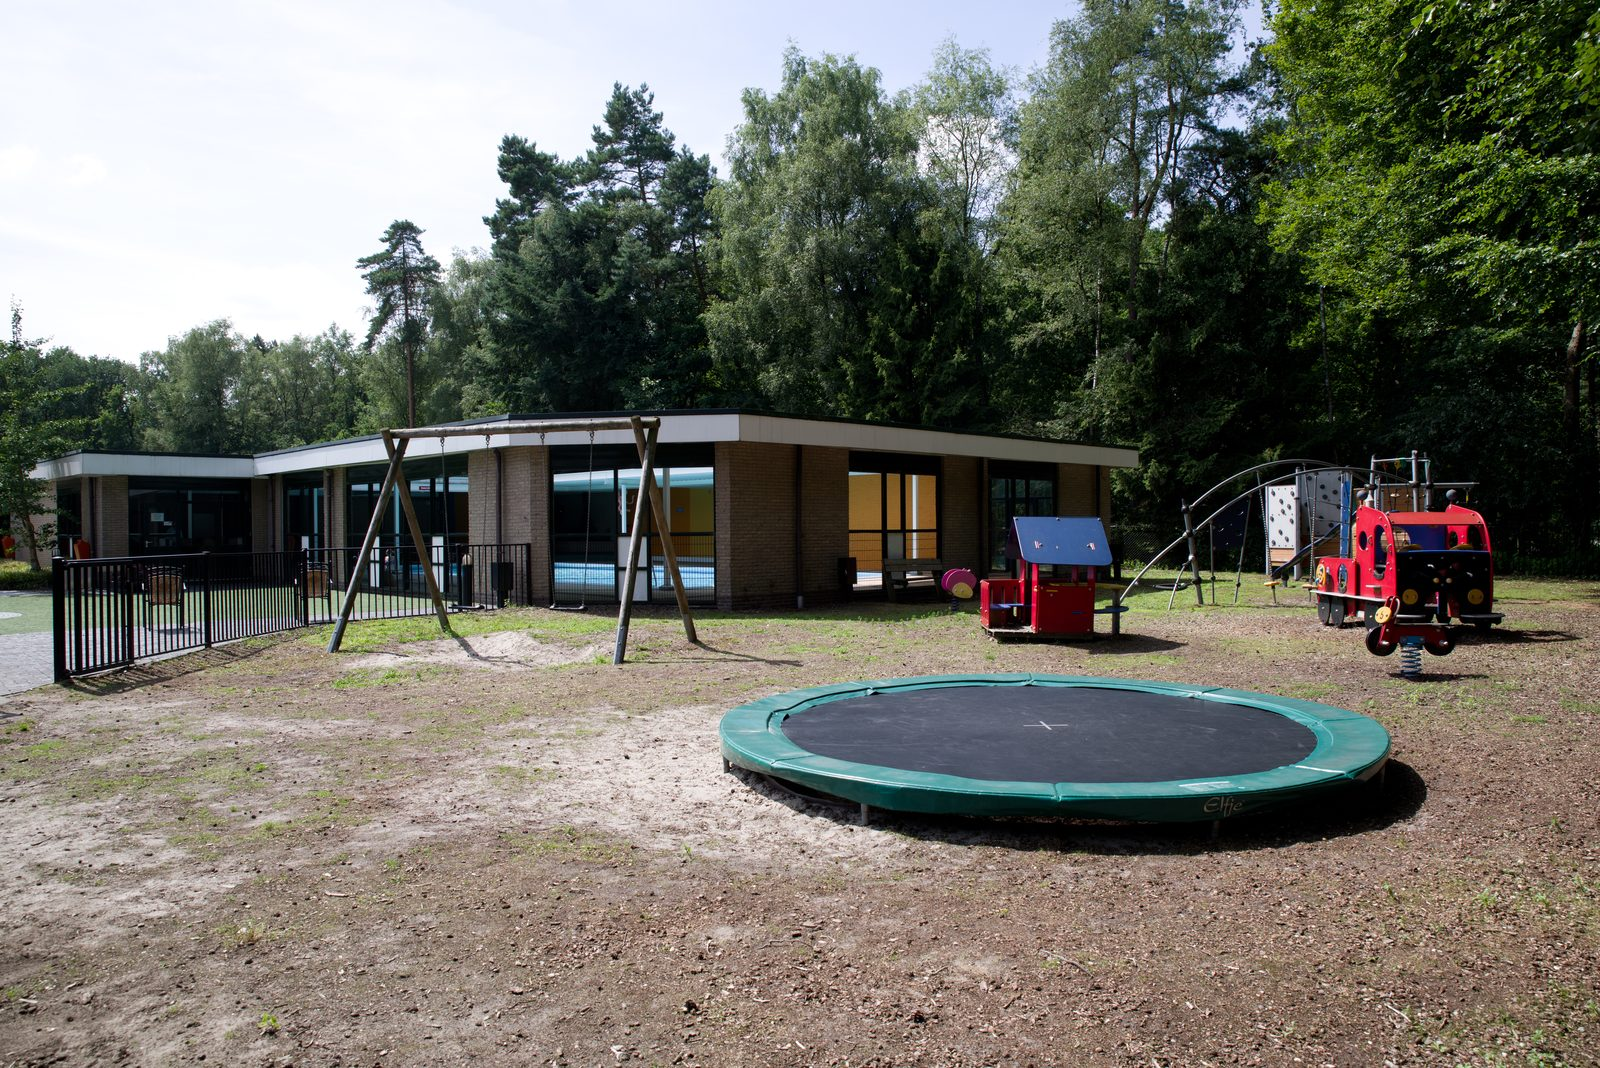 Recreatiedorp Ossenberg